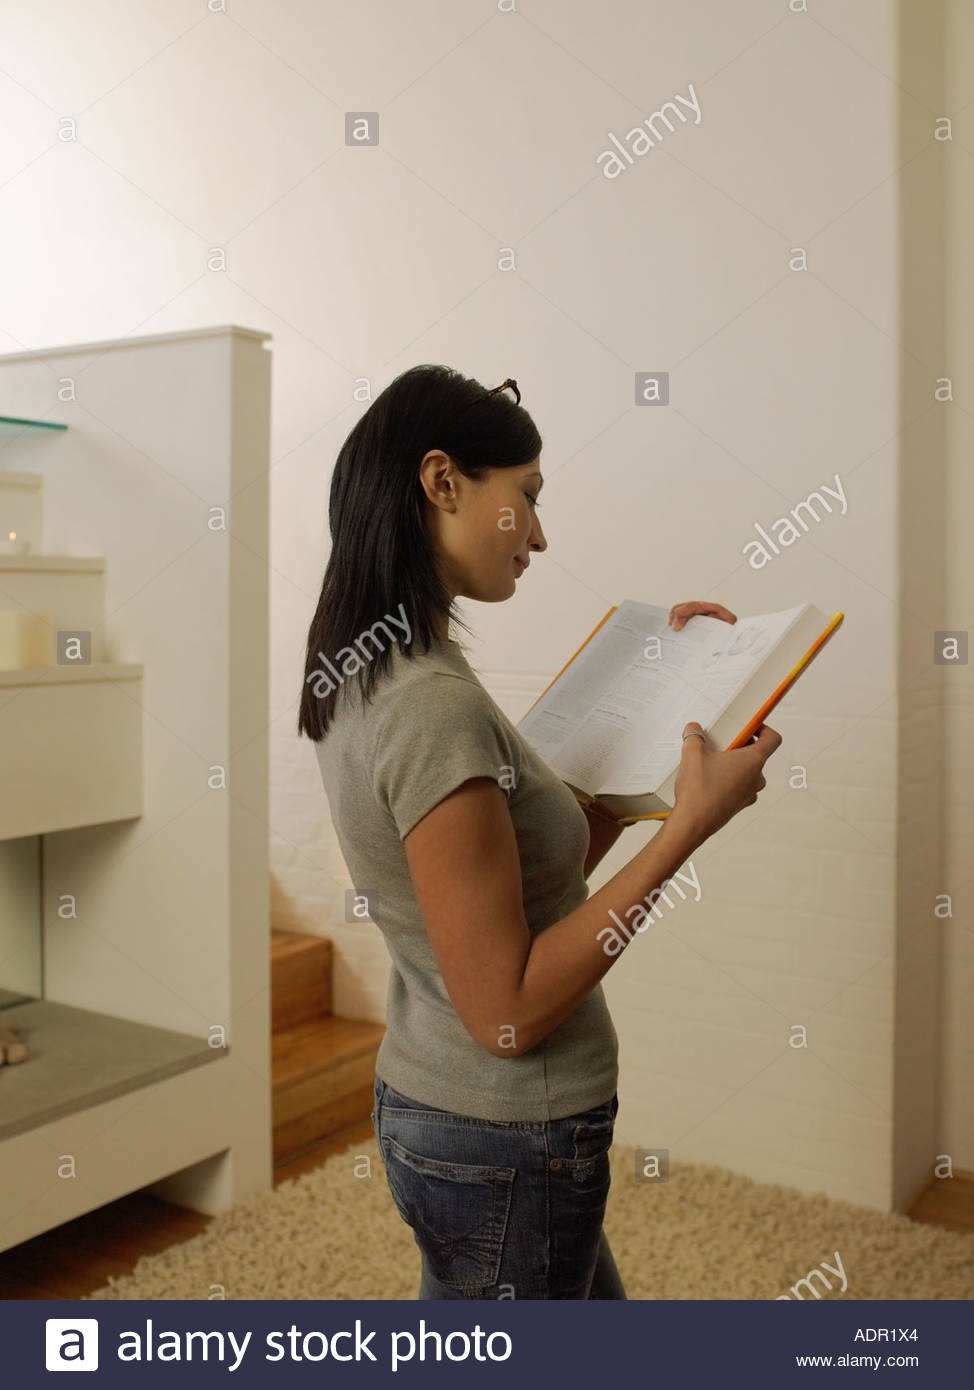 Woman reading a reference book - Stock Image